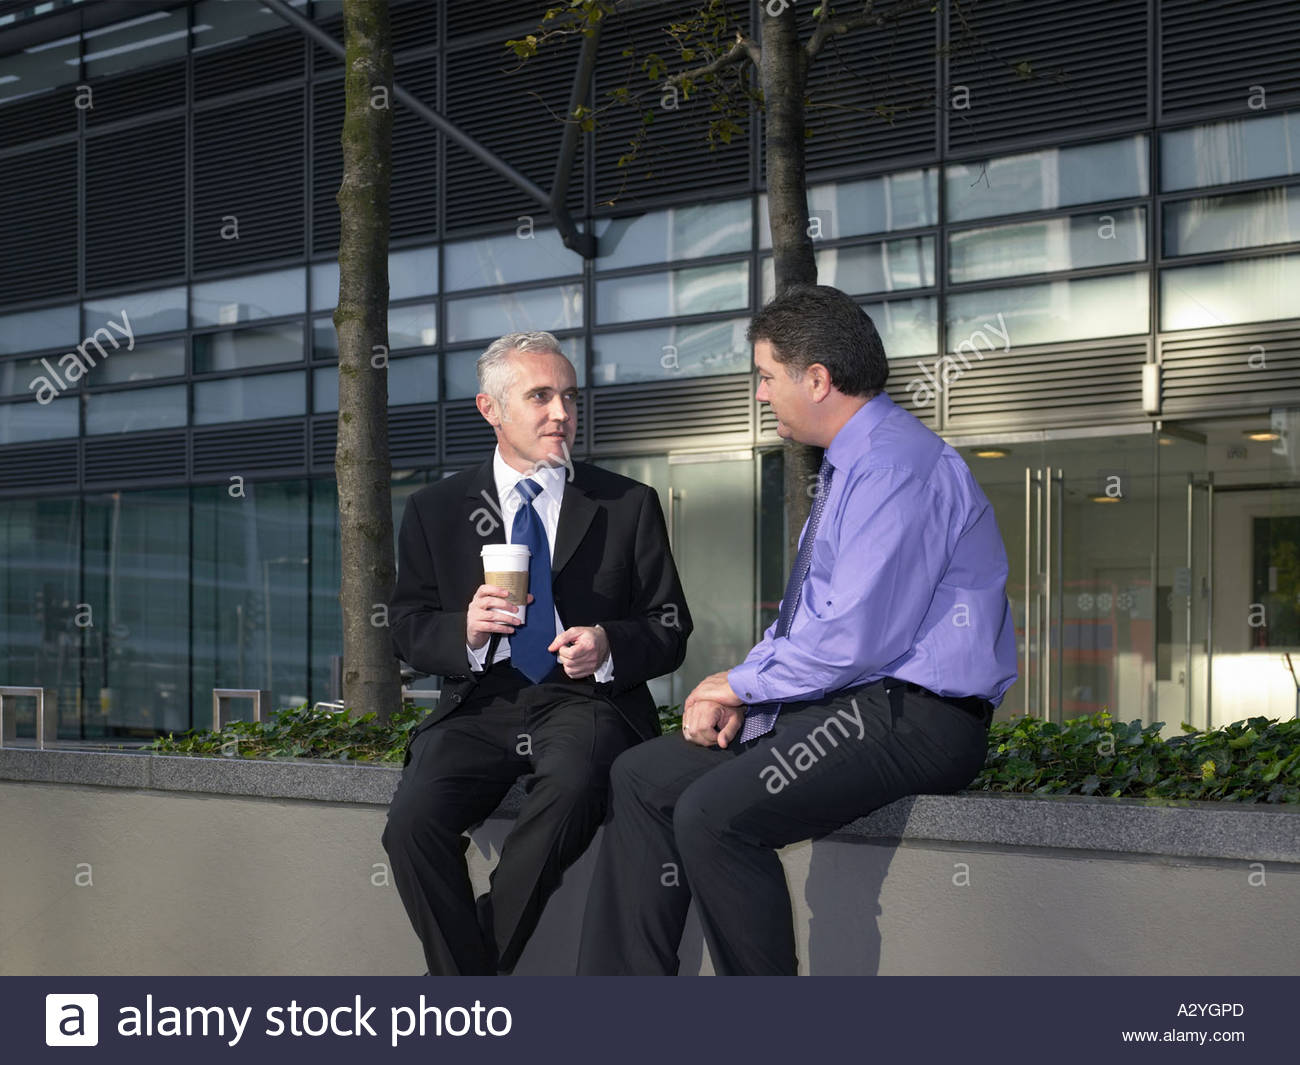 Businessmen talking on a wall - Stock Image